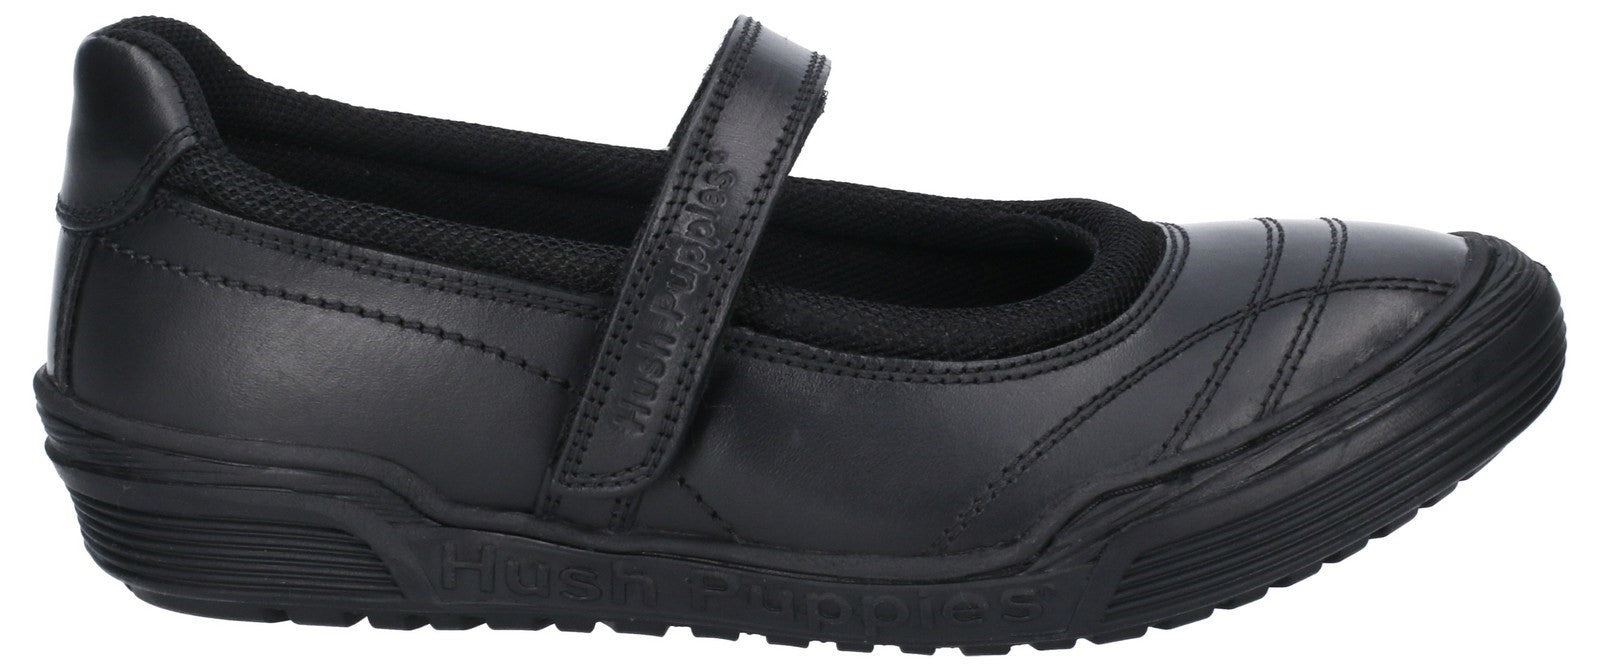 Hush Puppies Men's Amelia Snr Touch Fastening School Shoe Black 28976